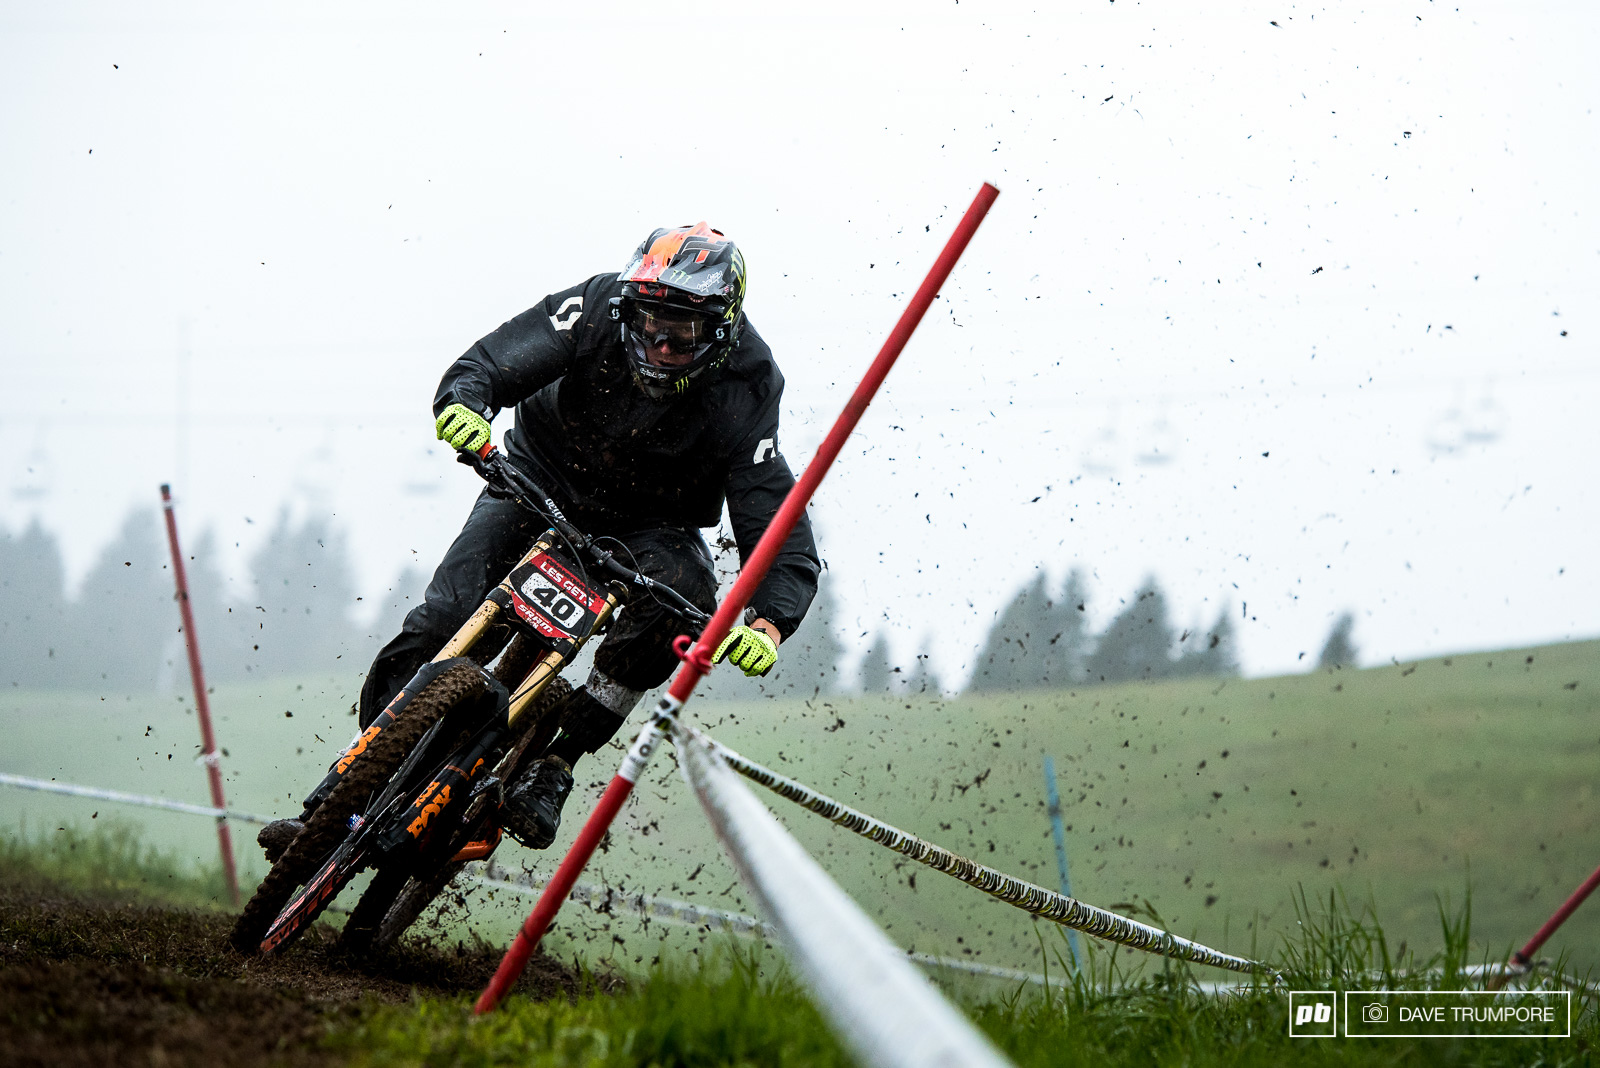 Brendan Fairclough fully committed through this super high speed muddy turn right out of the gate.